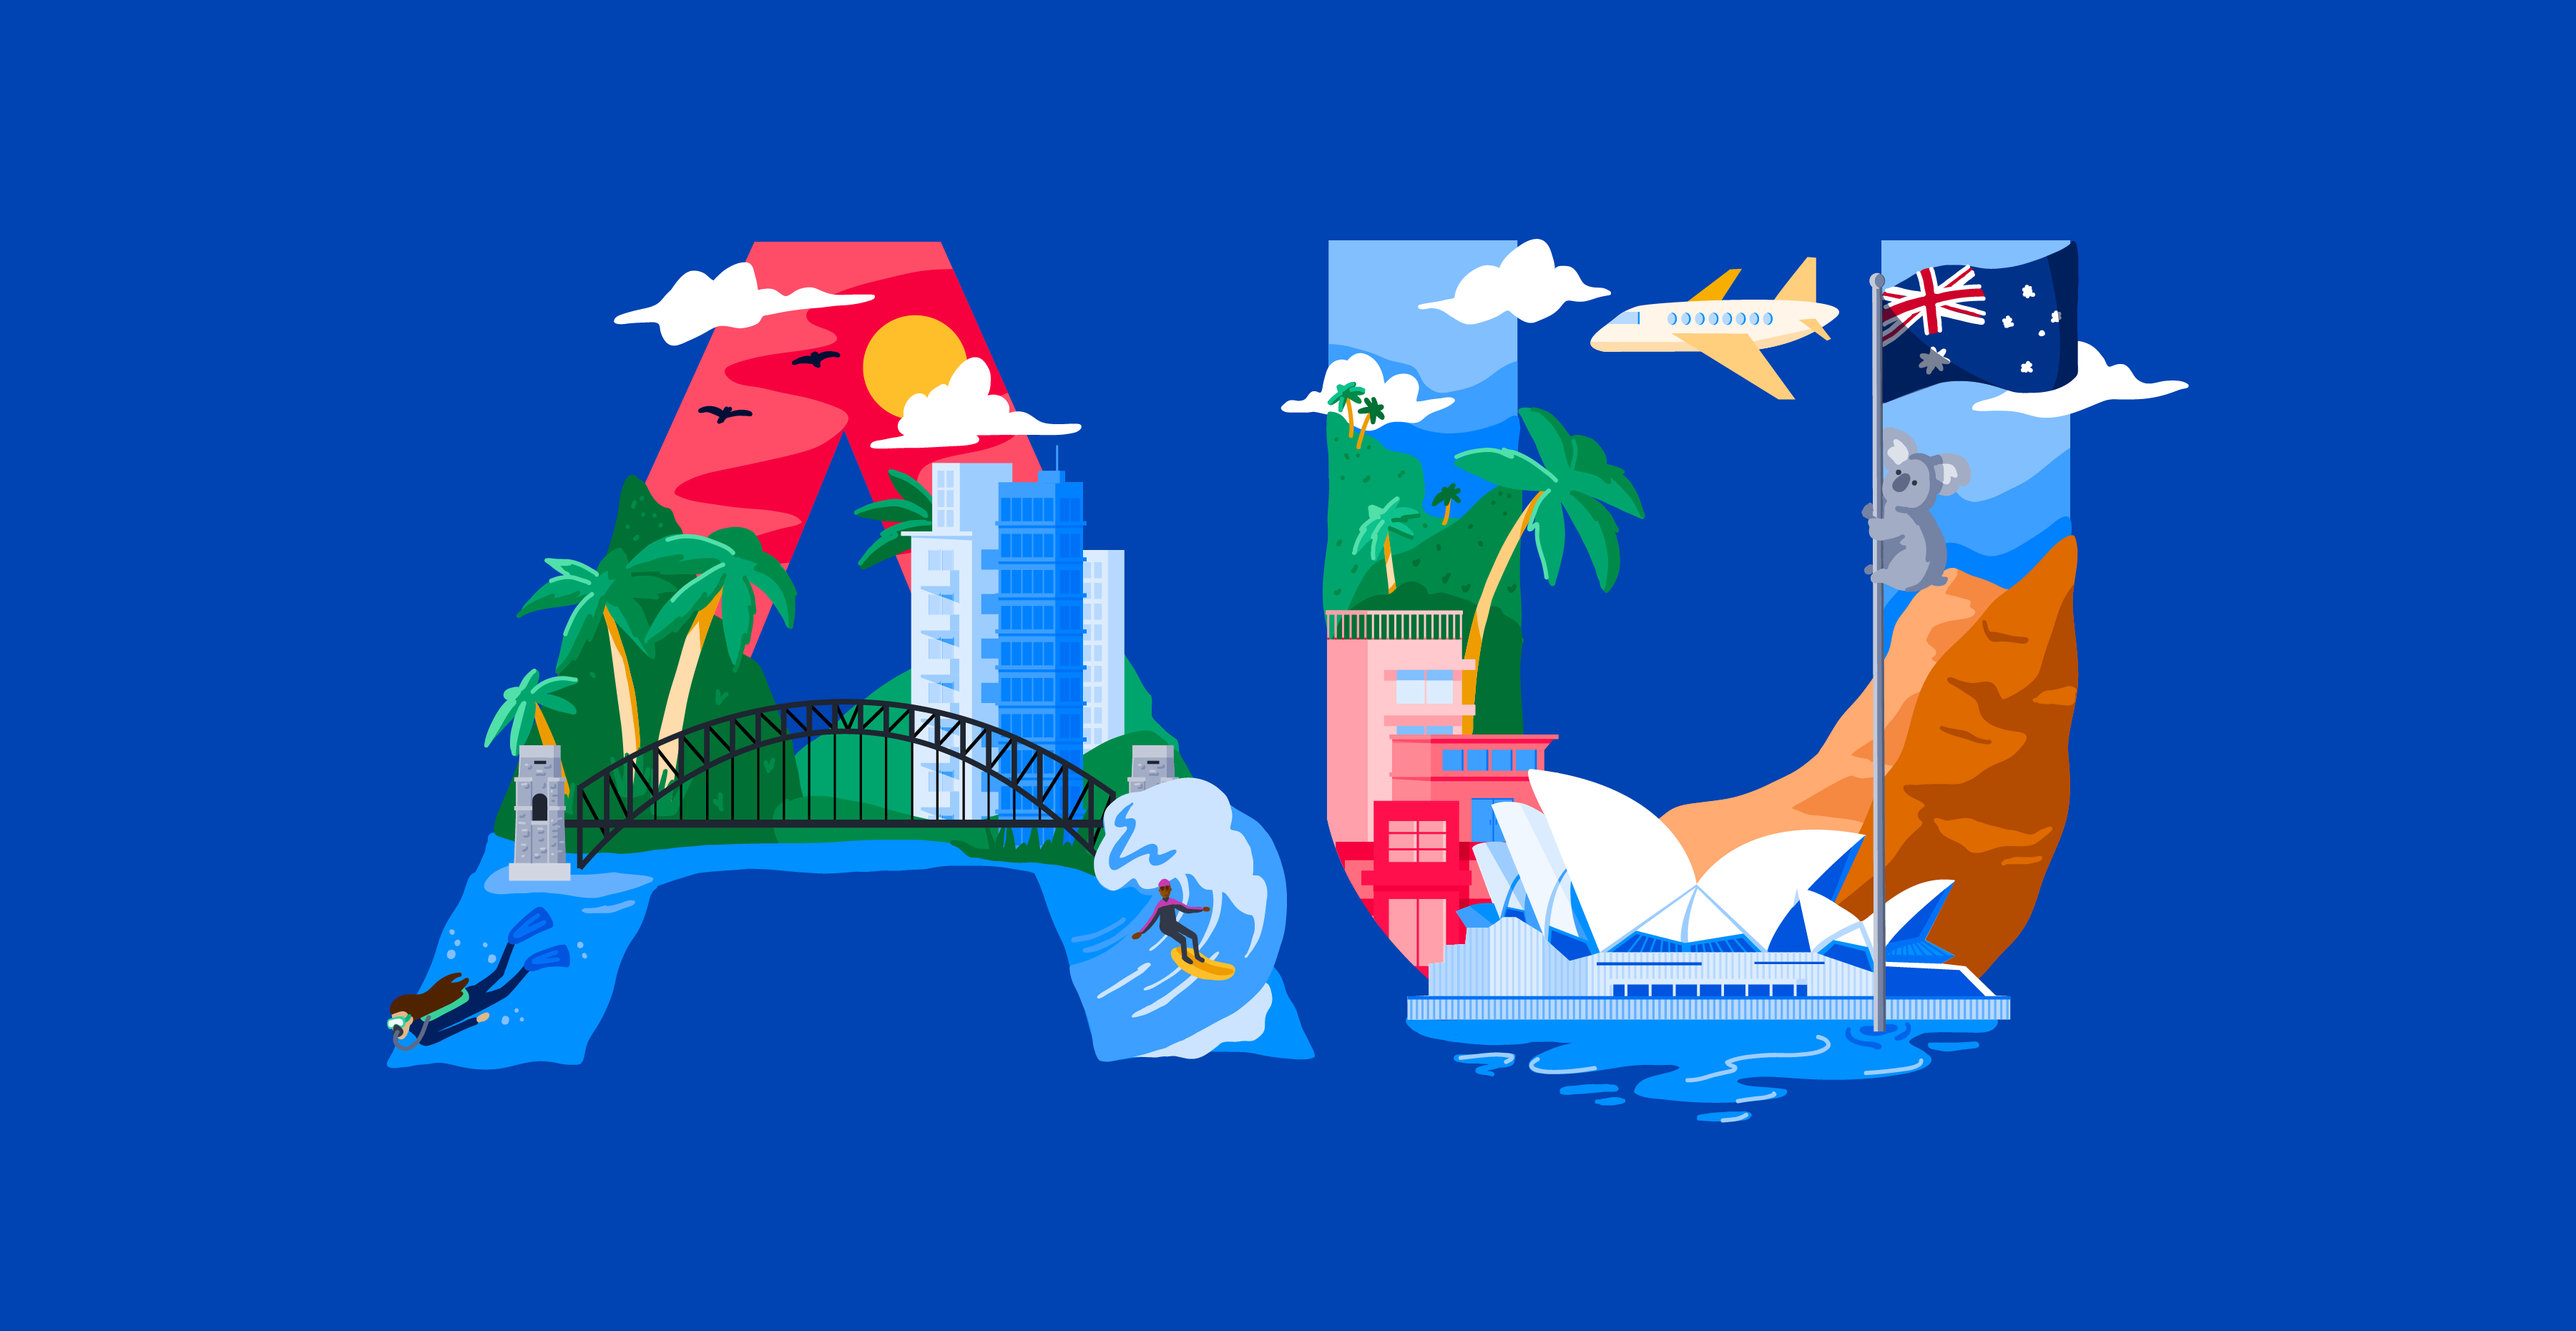 Graphic with the letters A and U and various Australian imagery